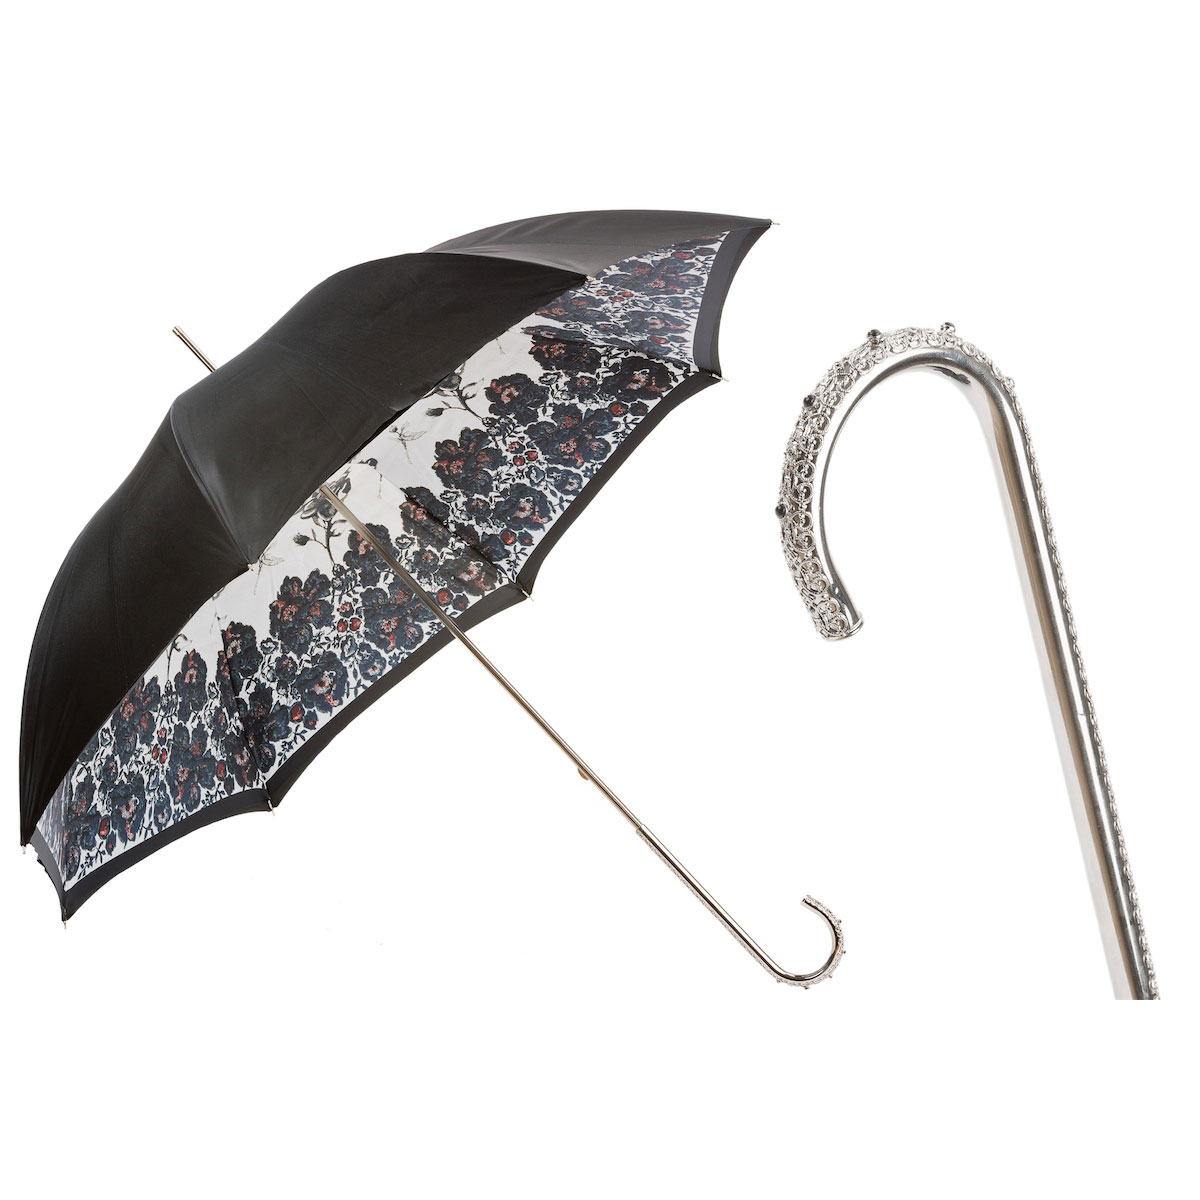 Pasotti Ombrelli Beautiful Italian Luxury Women's Umbrella - Metal Handle